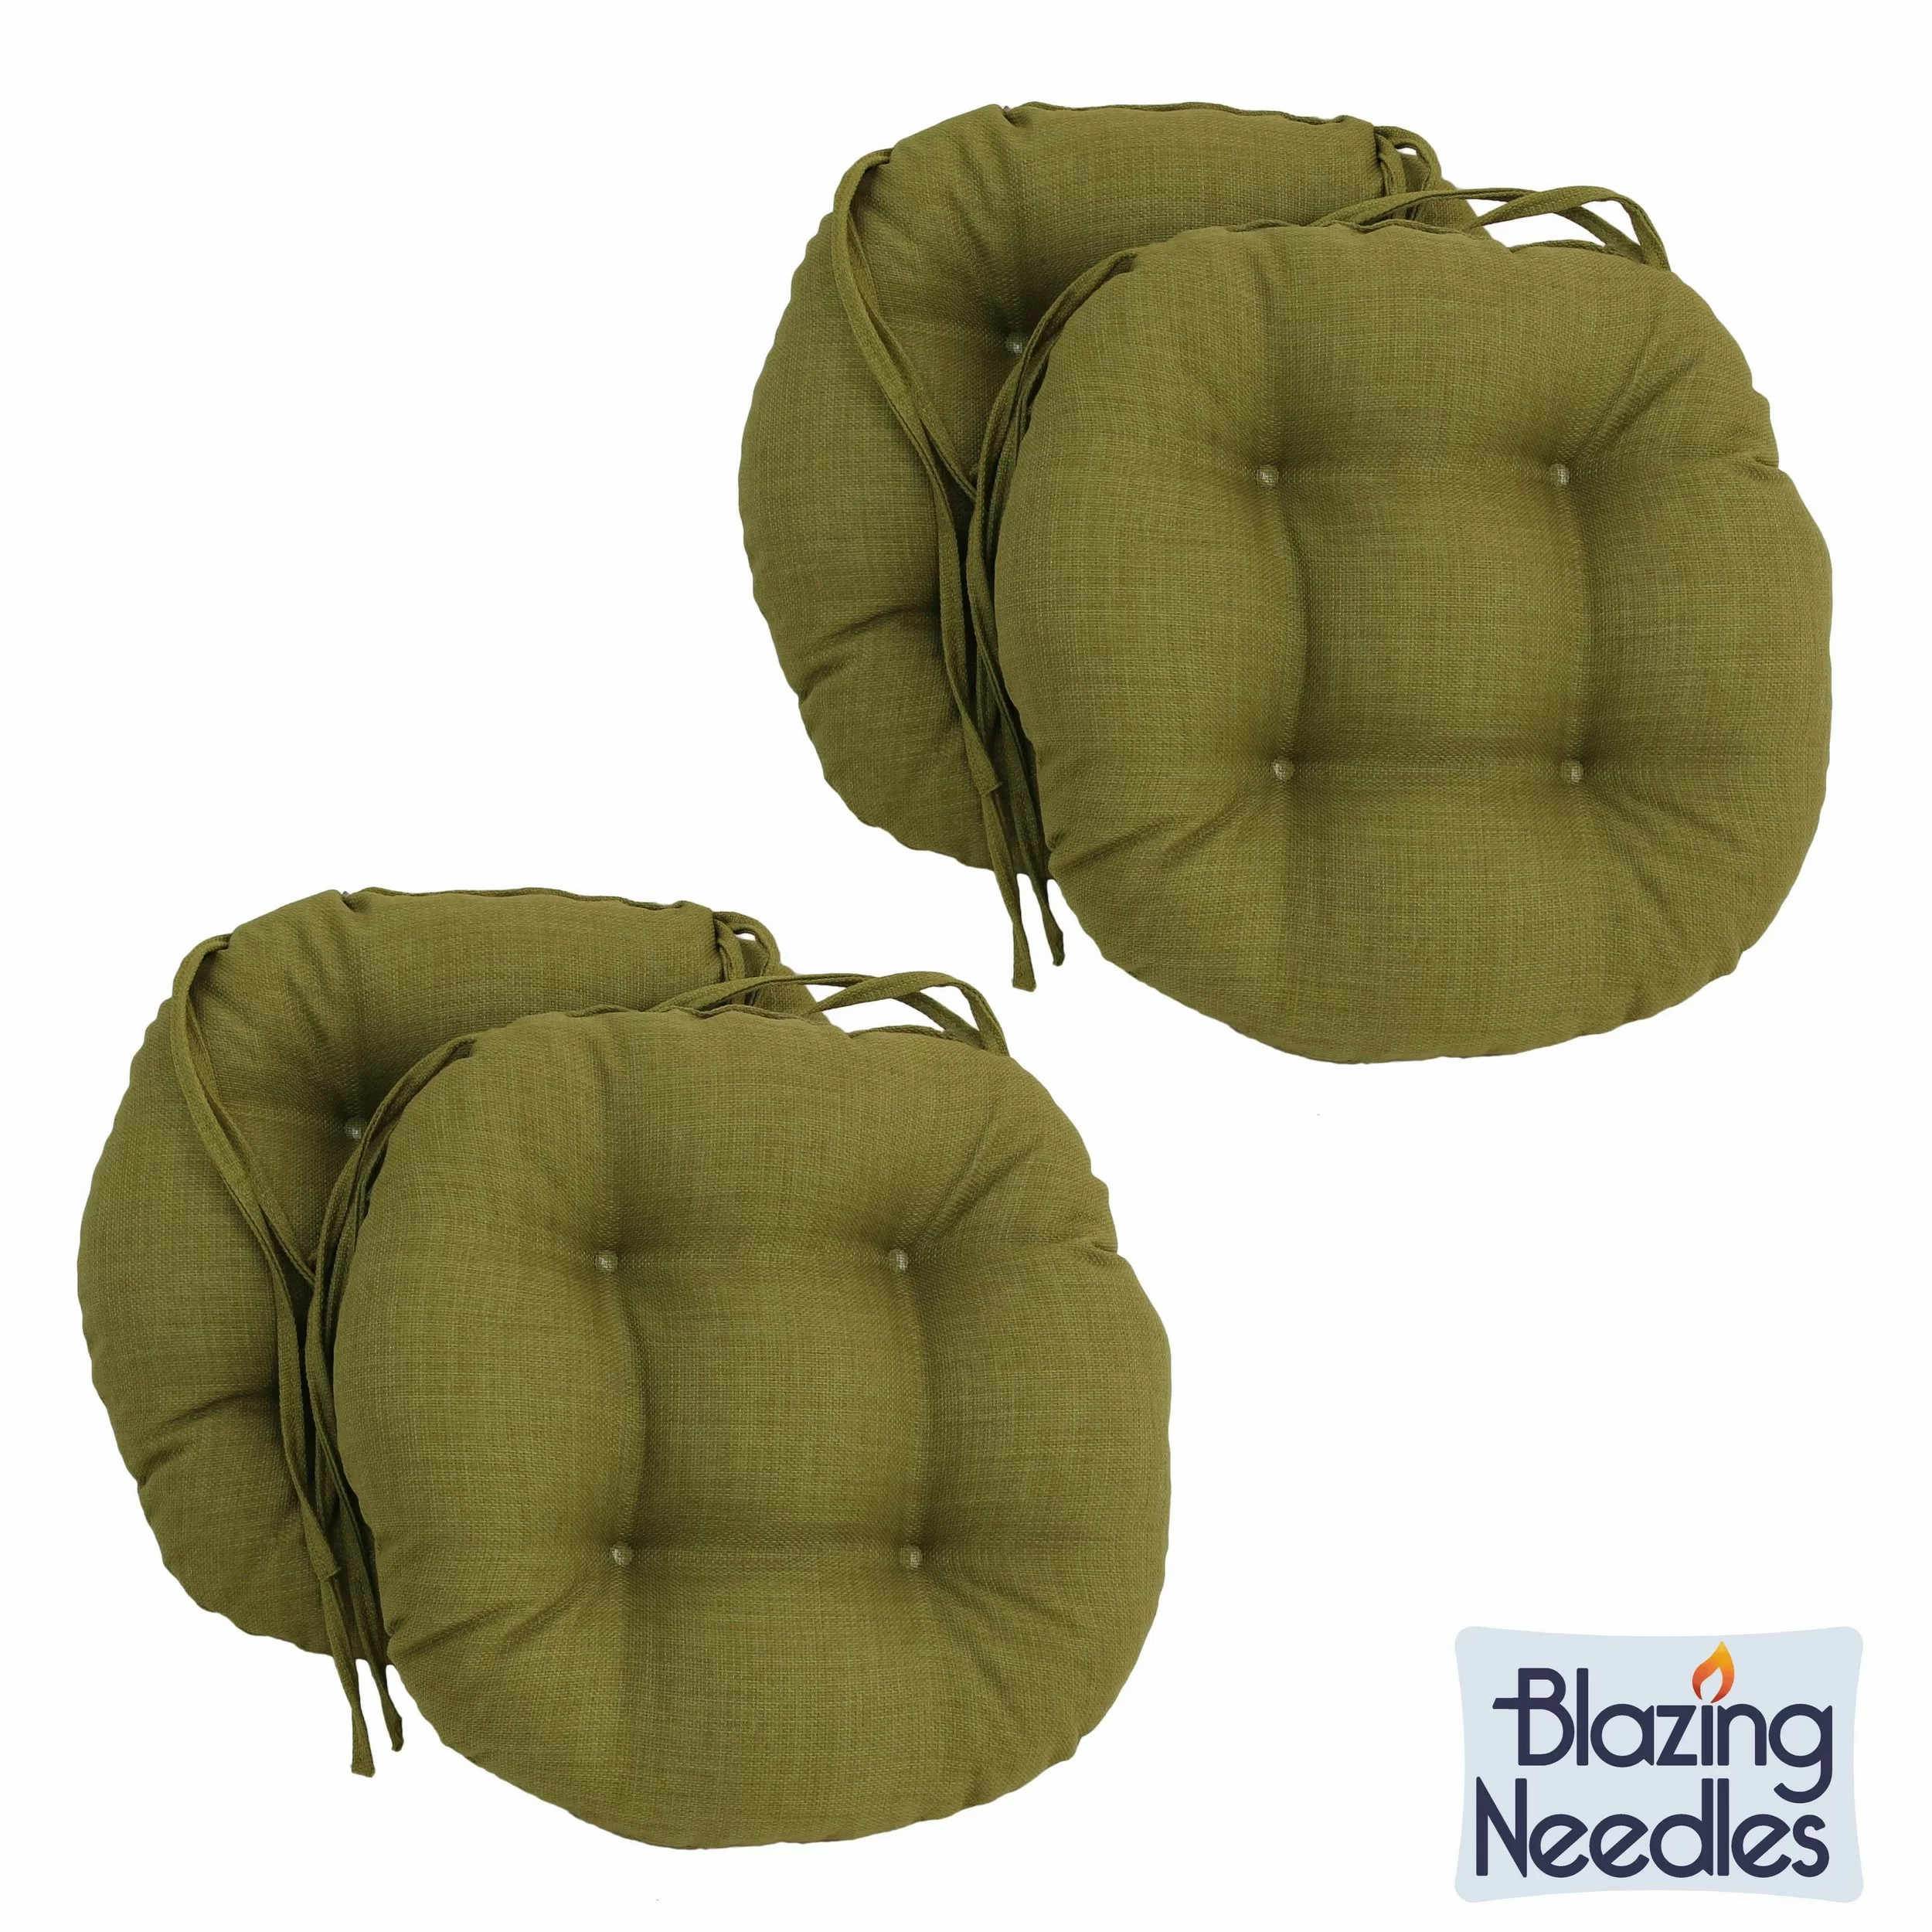 16 round chair cushions air swing blazing needles inch outdoor